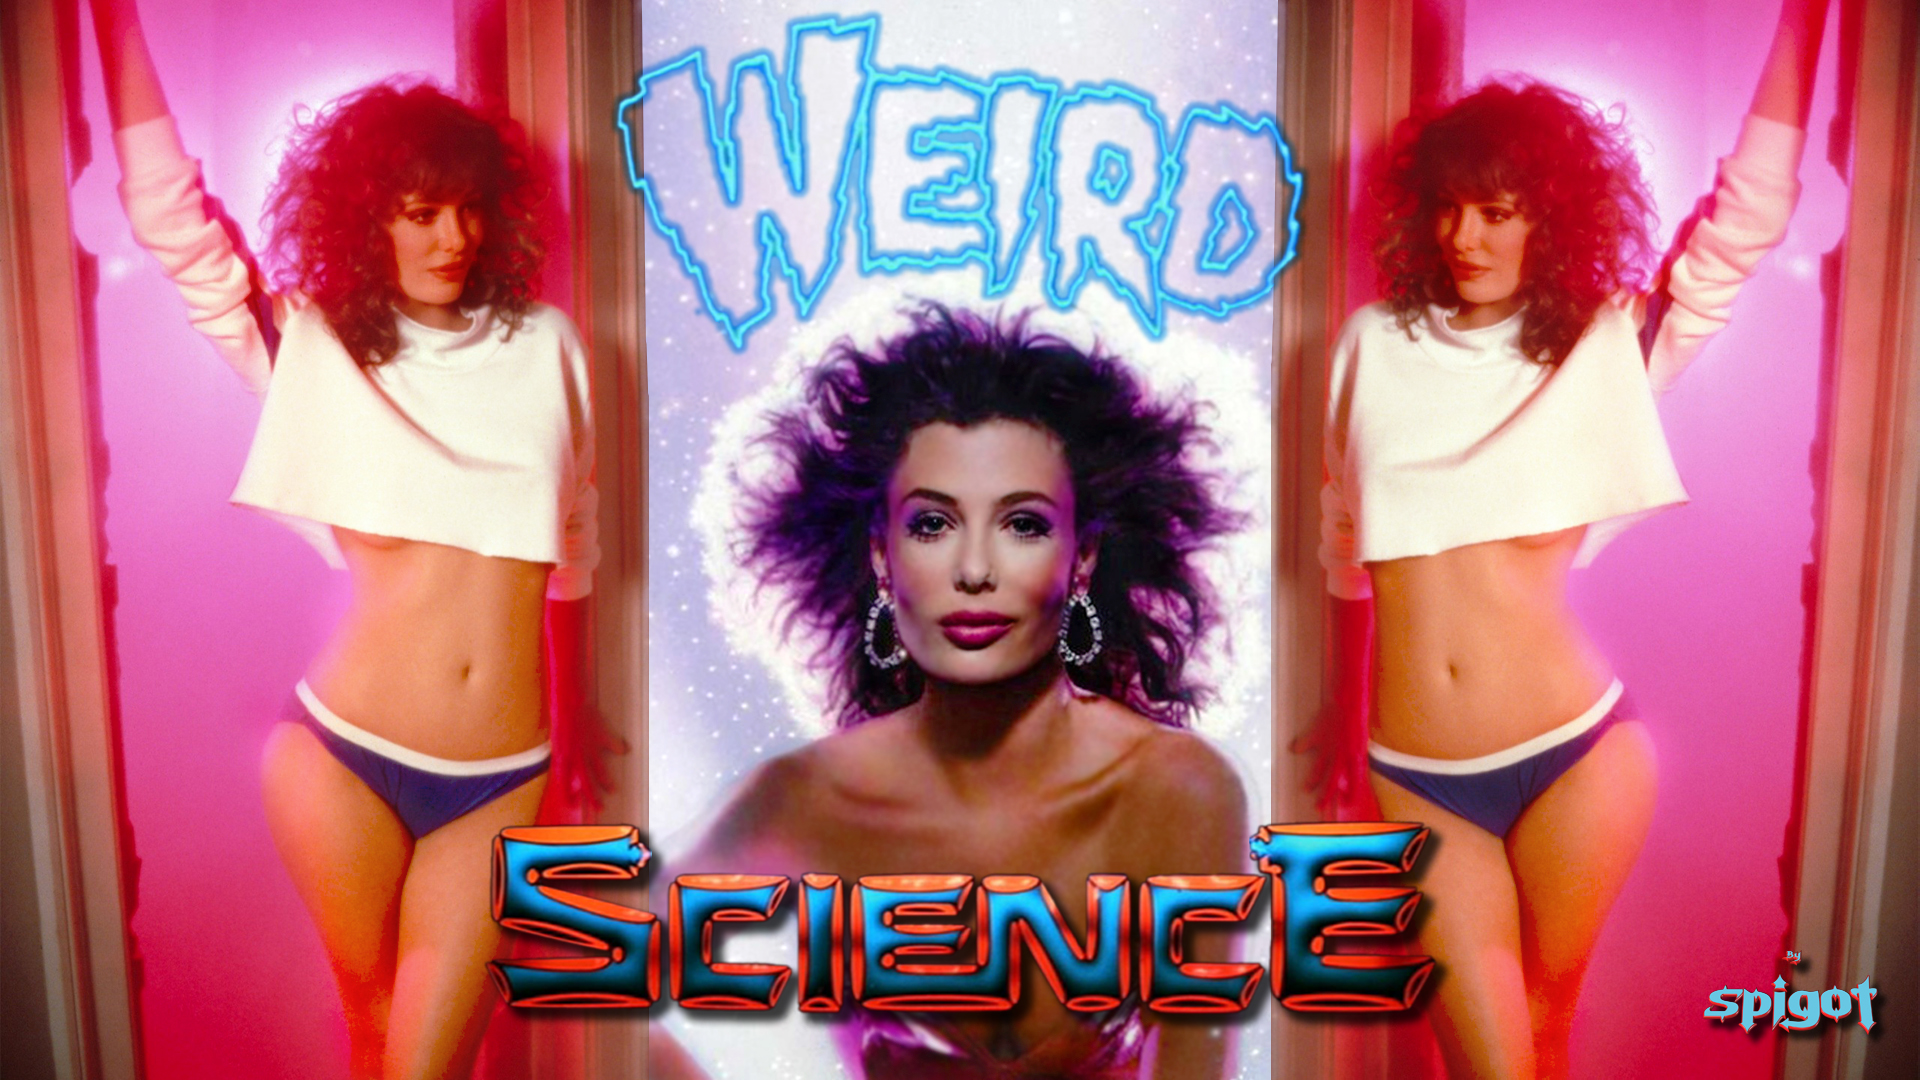 Weird Science Wallpaper | George Spigot's Blog